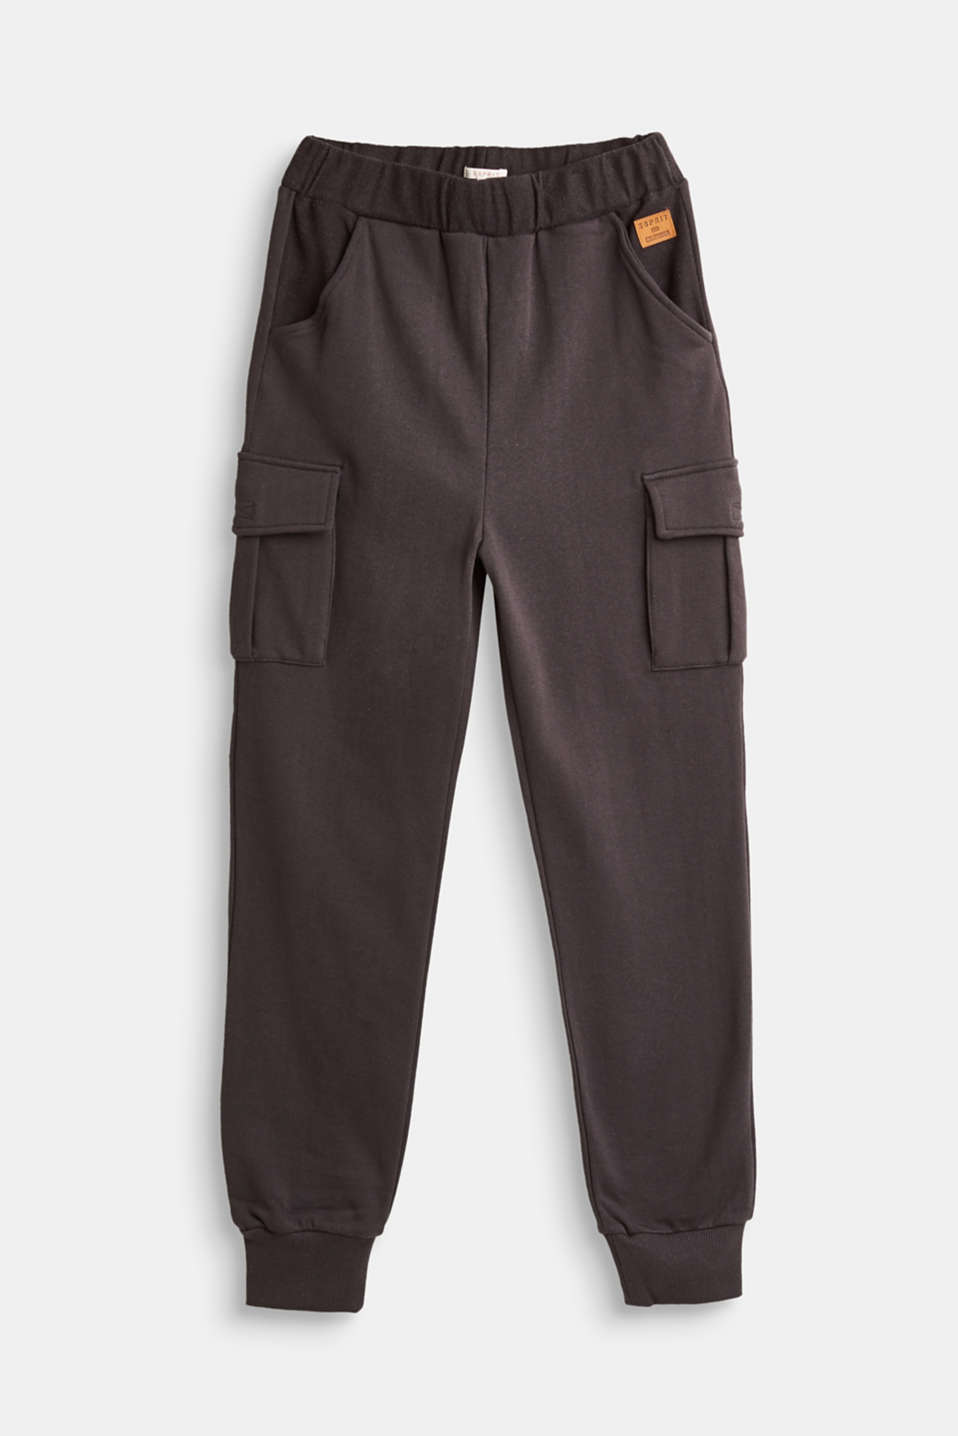 Esprit - Tracksuit bottoms with cargo pockets, 100% cotton